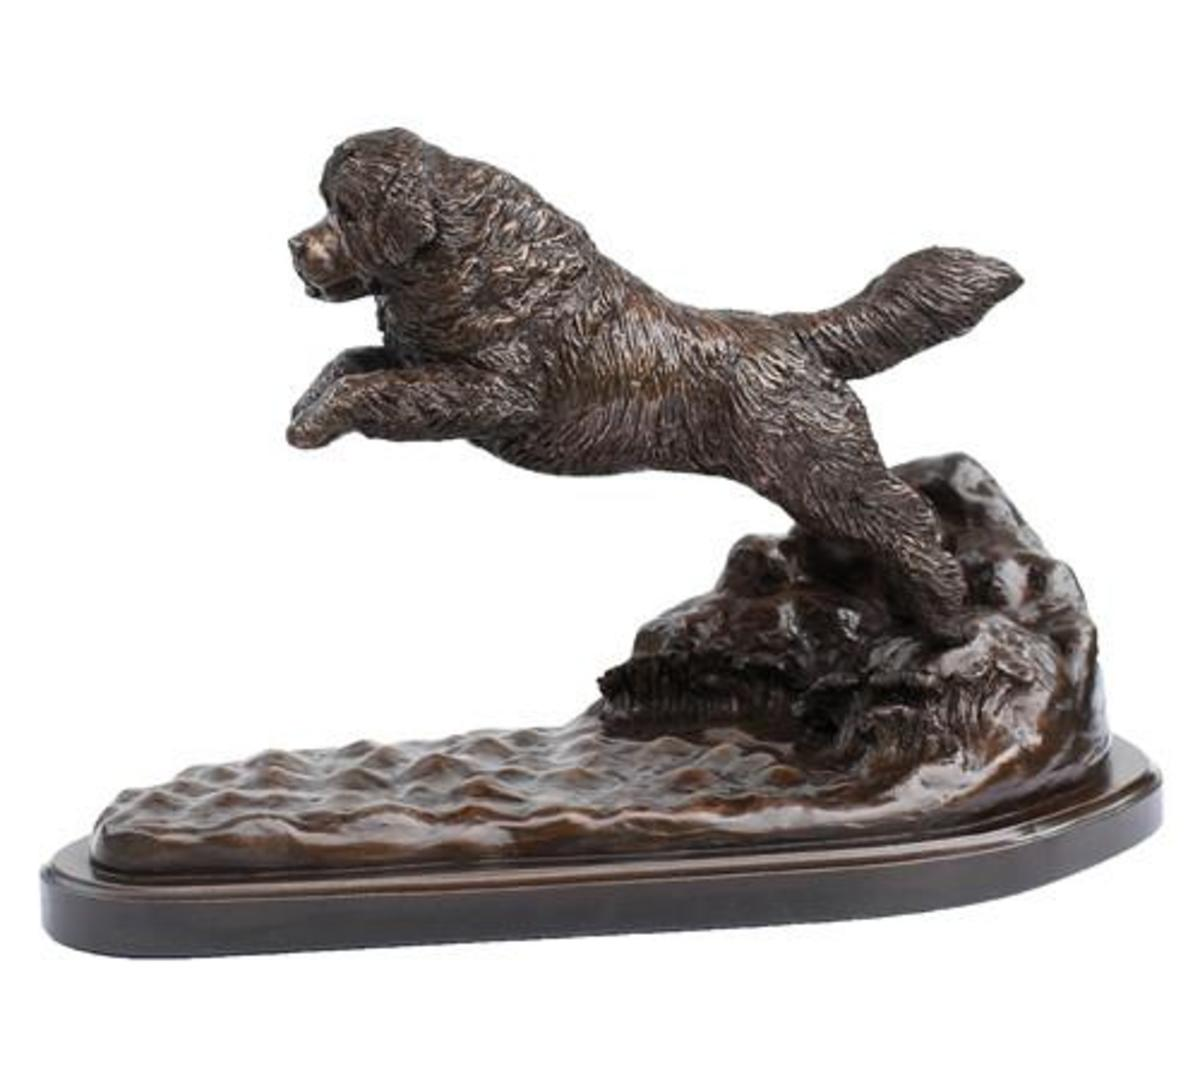 Launch - A limited edition statue of a Newfoundland dog